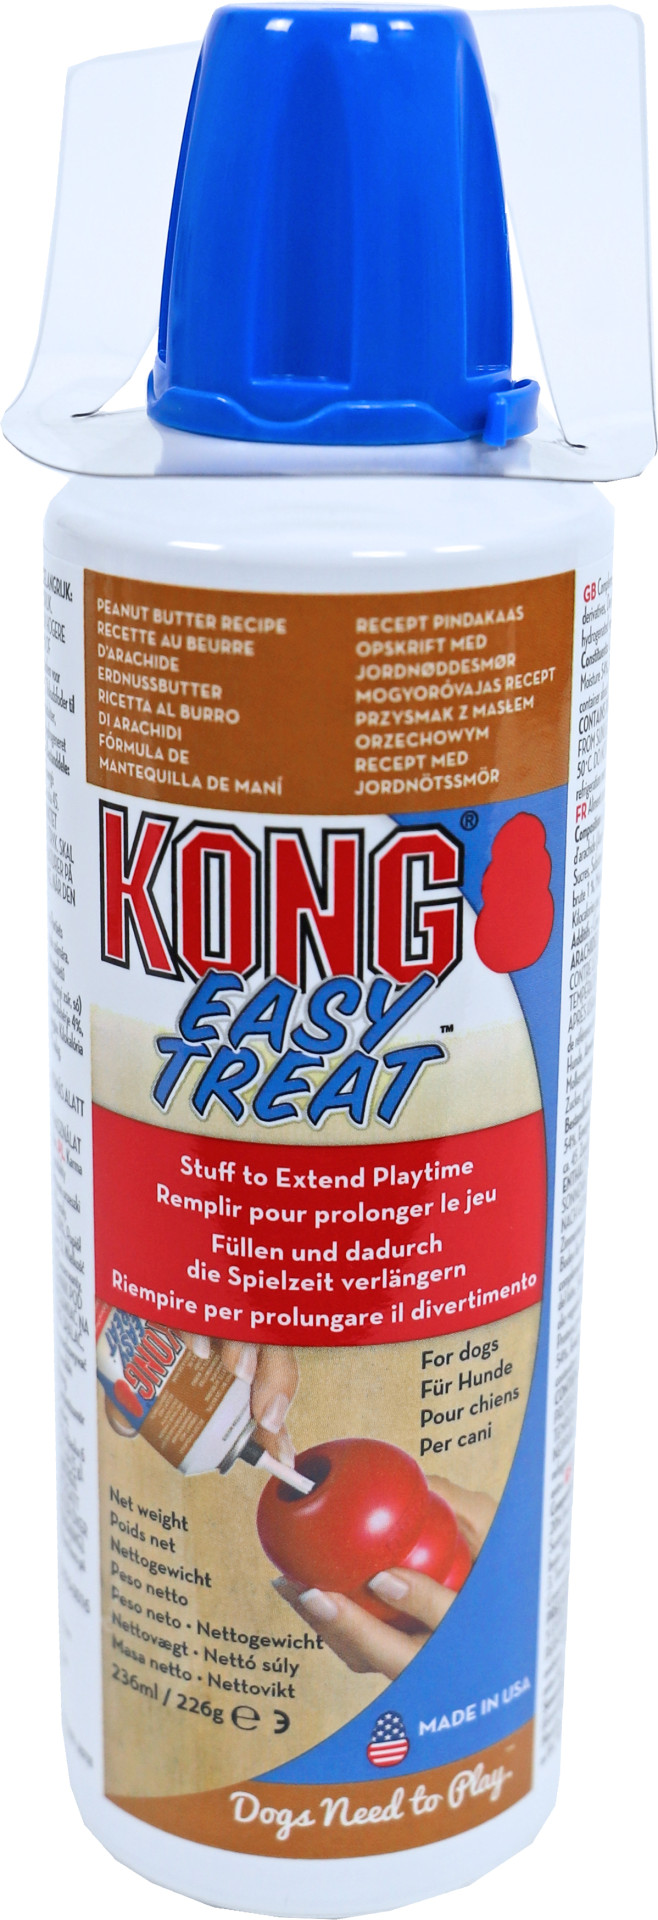 Kong spuitbus Easy Treat peanutbutter